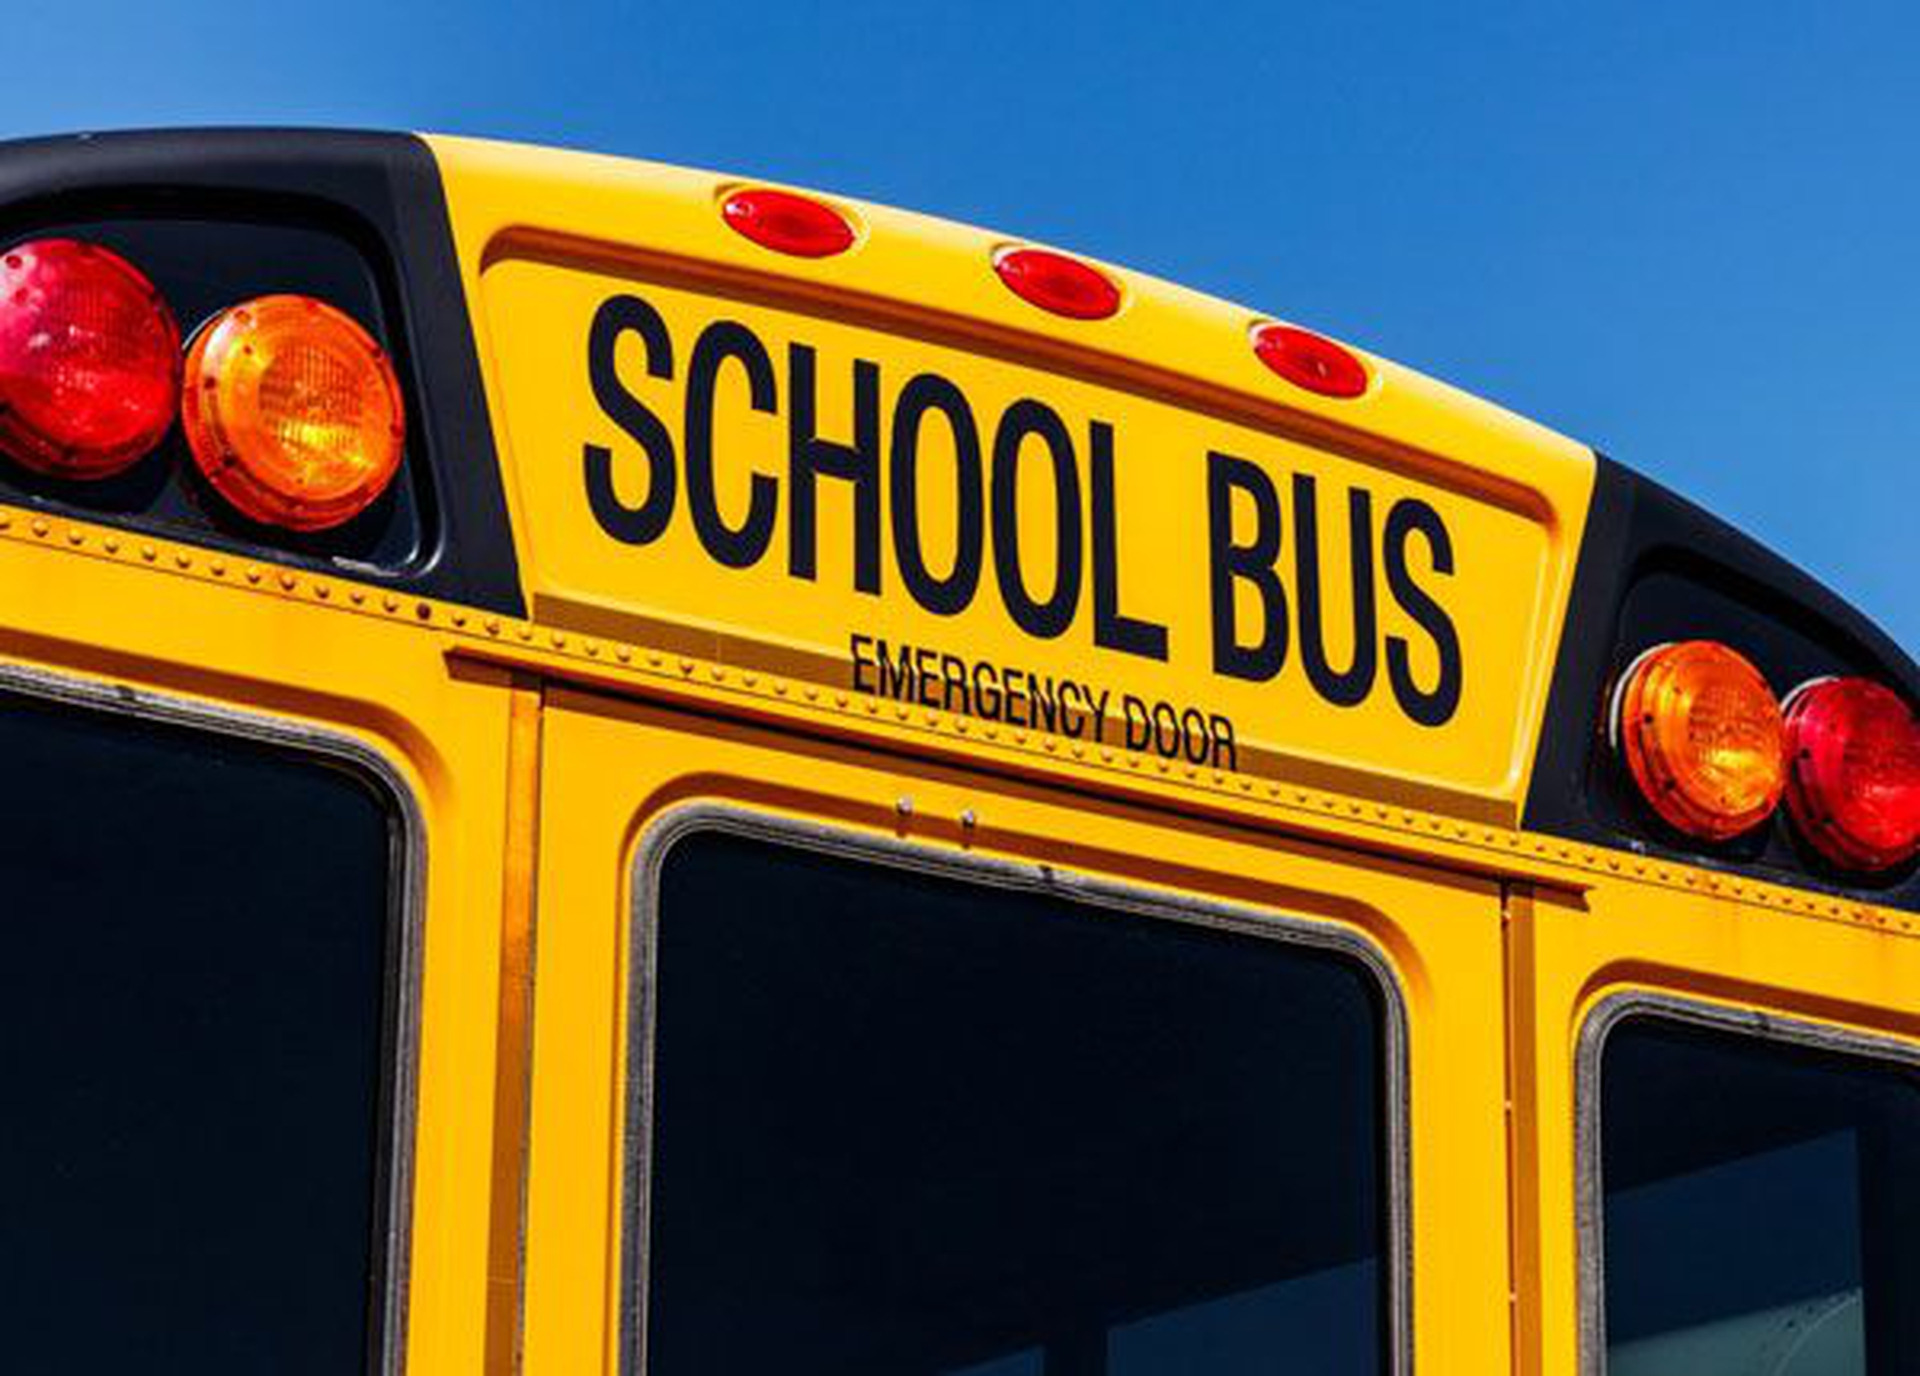 Driving Around School Buses: When to Stop